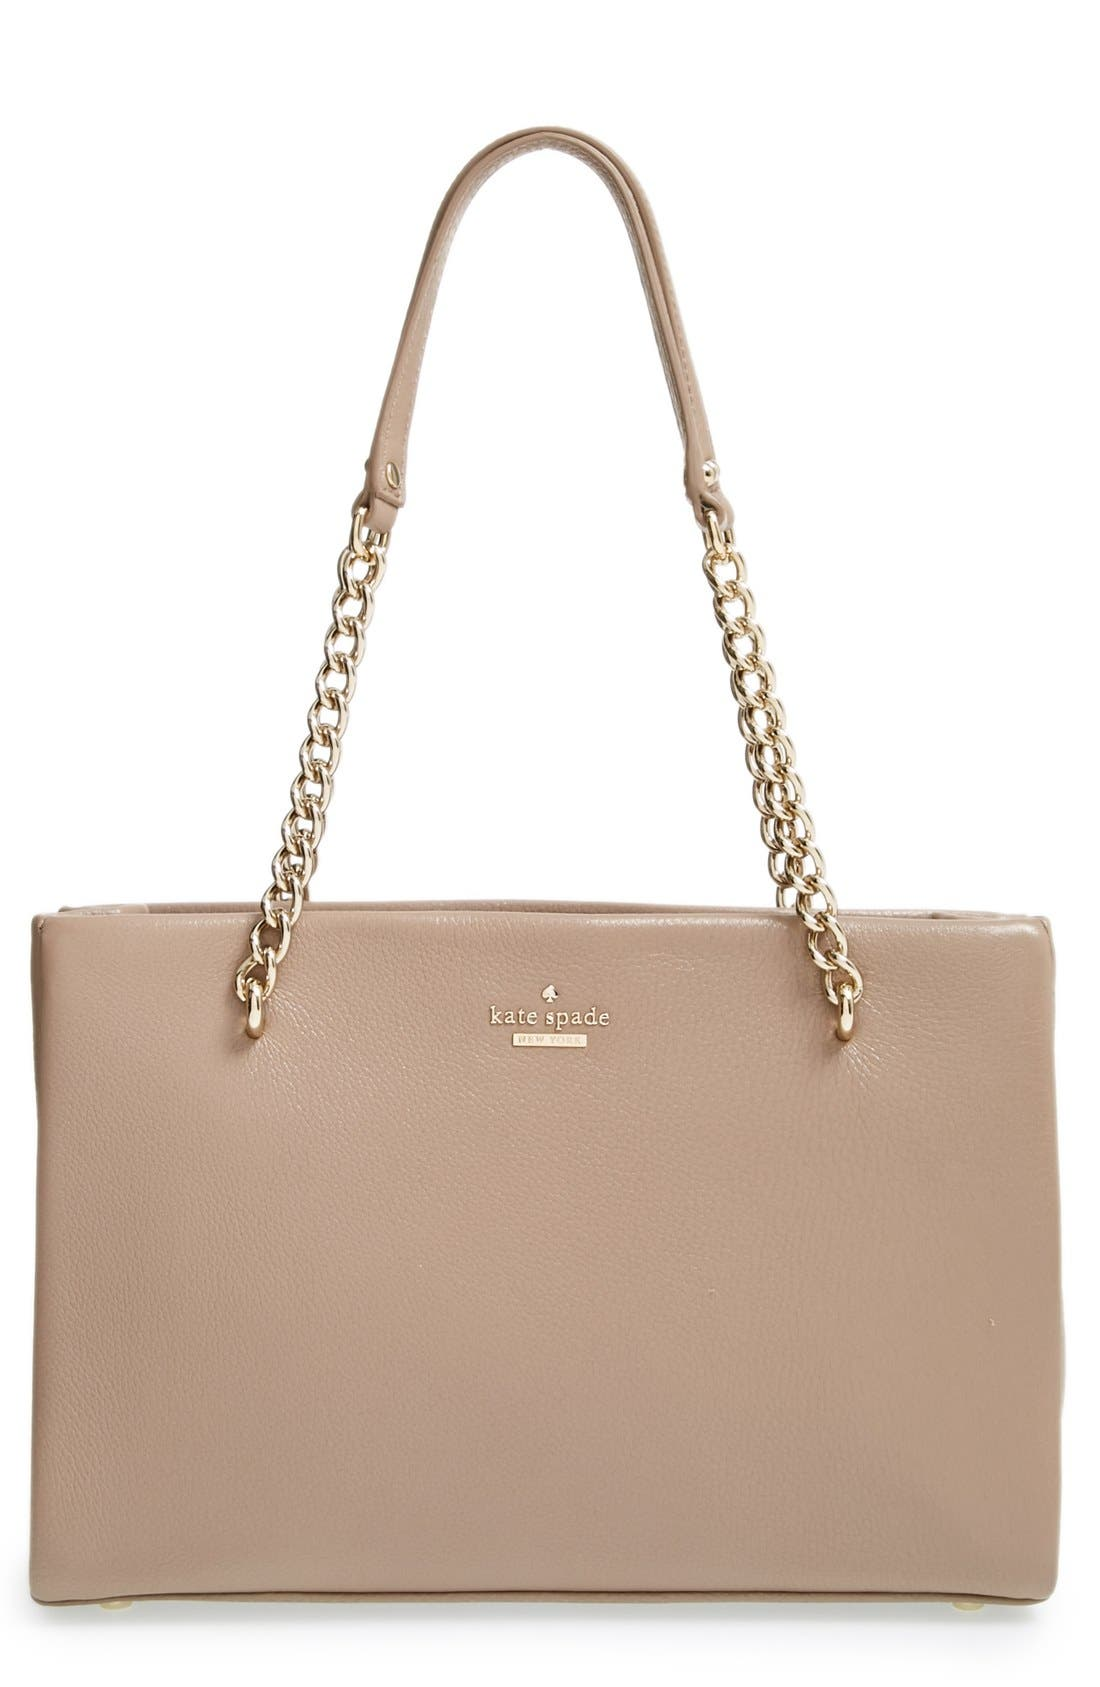 Main Image - kate spade new york 'emerson place - small phoebe' leather shoulder bag